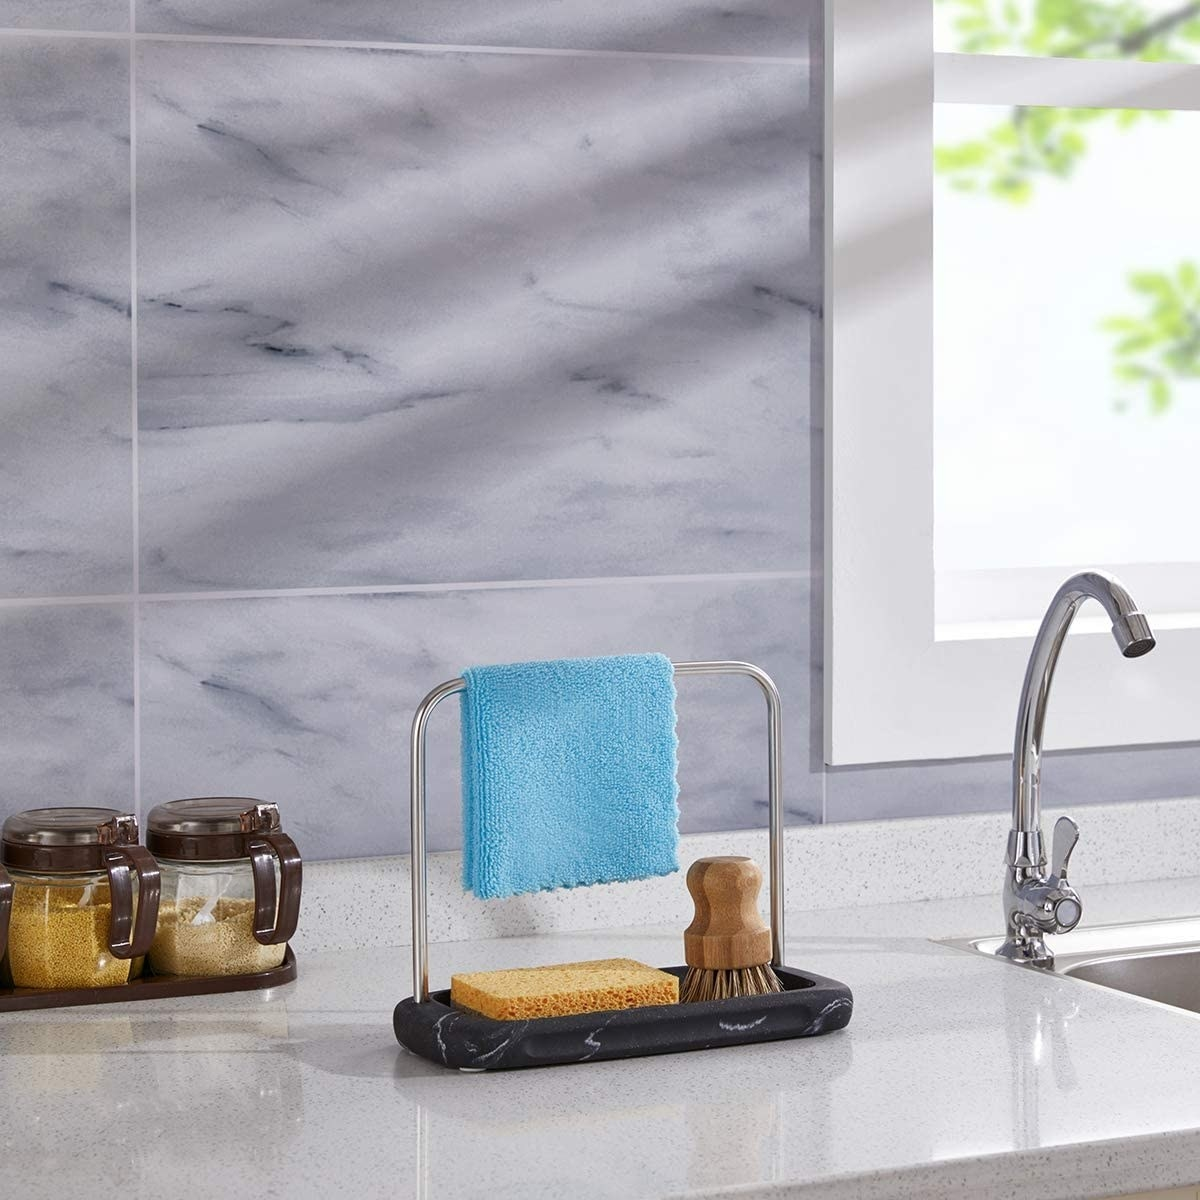 The caddy with a cloth hanging over it above a sponge and scrub on a counter